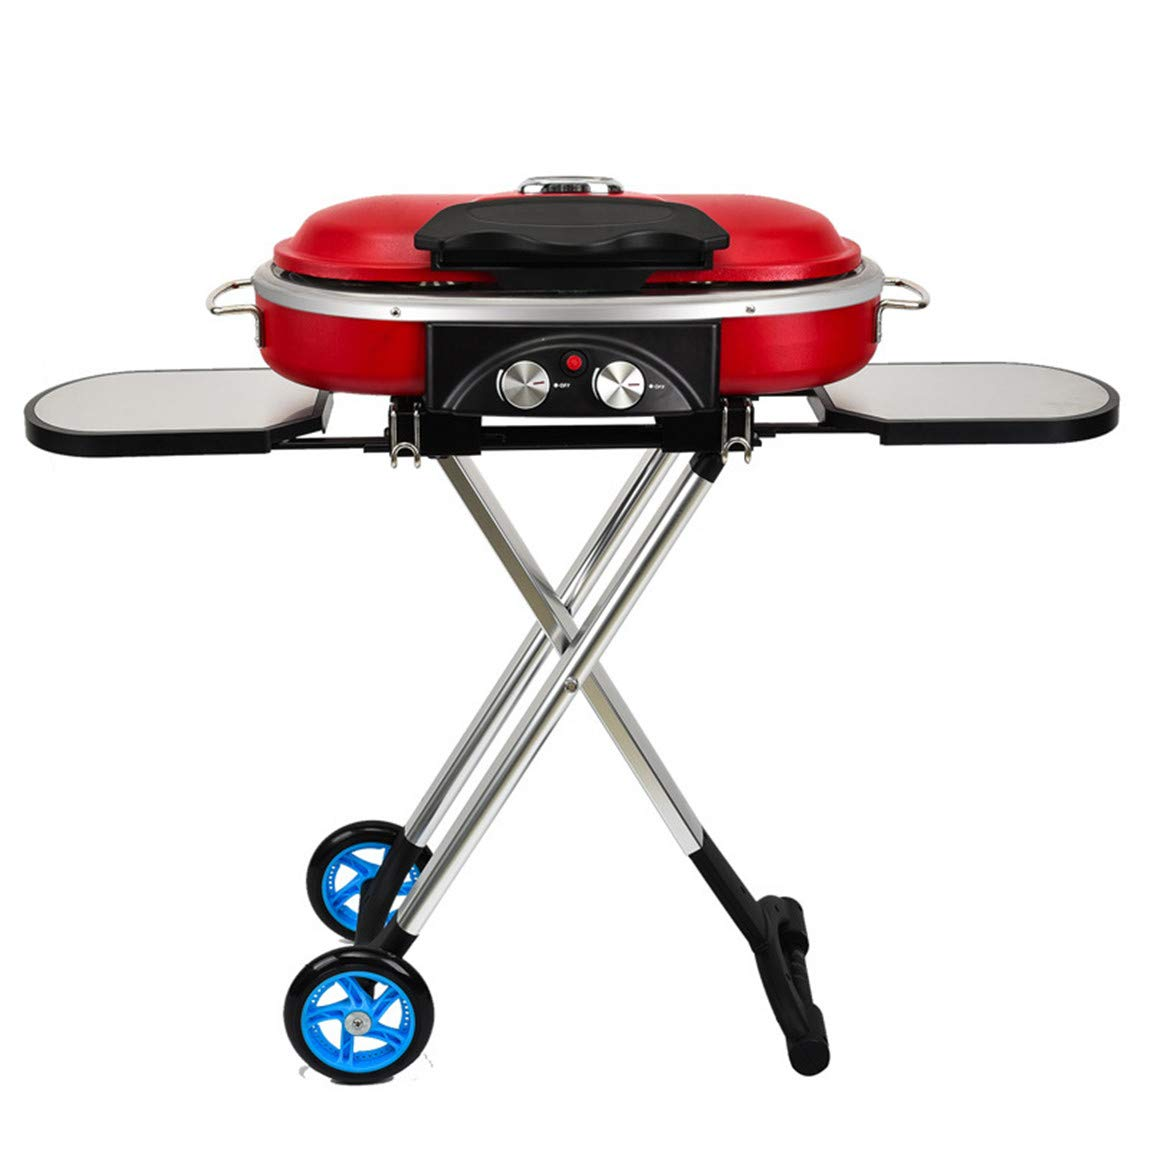 Xiaoai's shop Outdoor Portable Barbecue Machine, 600 Degrees Celsius high Temperature, Smoke-Free and Tasteless, eco-Friendly, Folding with Wheels, Slide and Walk,Red